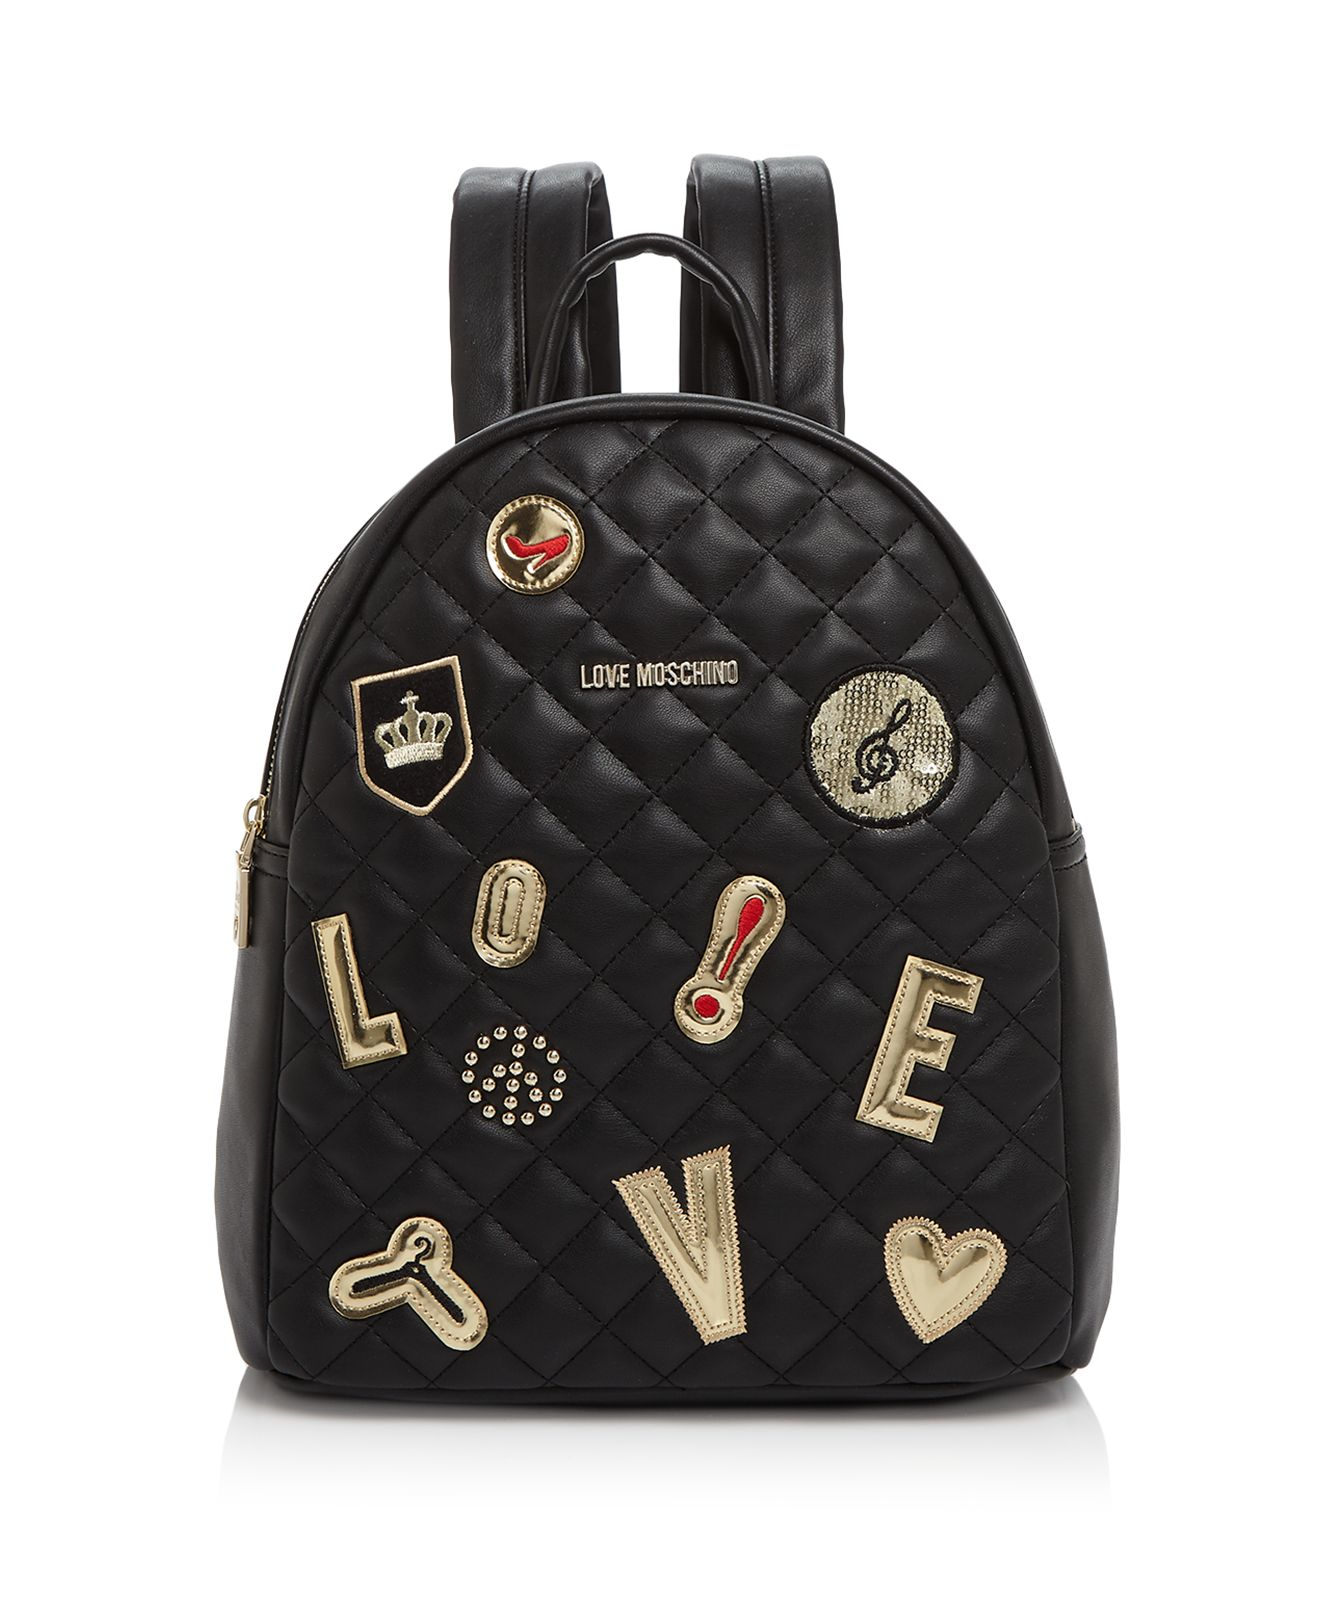 love moschino patchwork backpack in black lyst. Black Bedroom Furniture Sets. Home Design Ideas